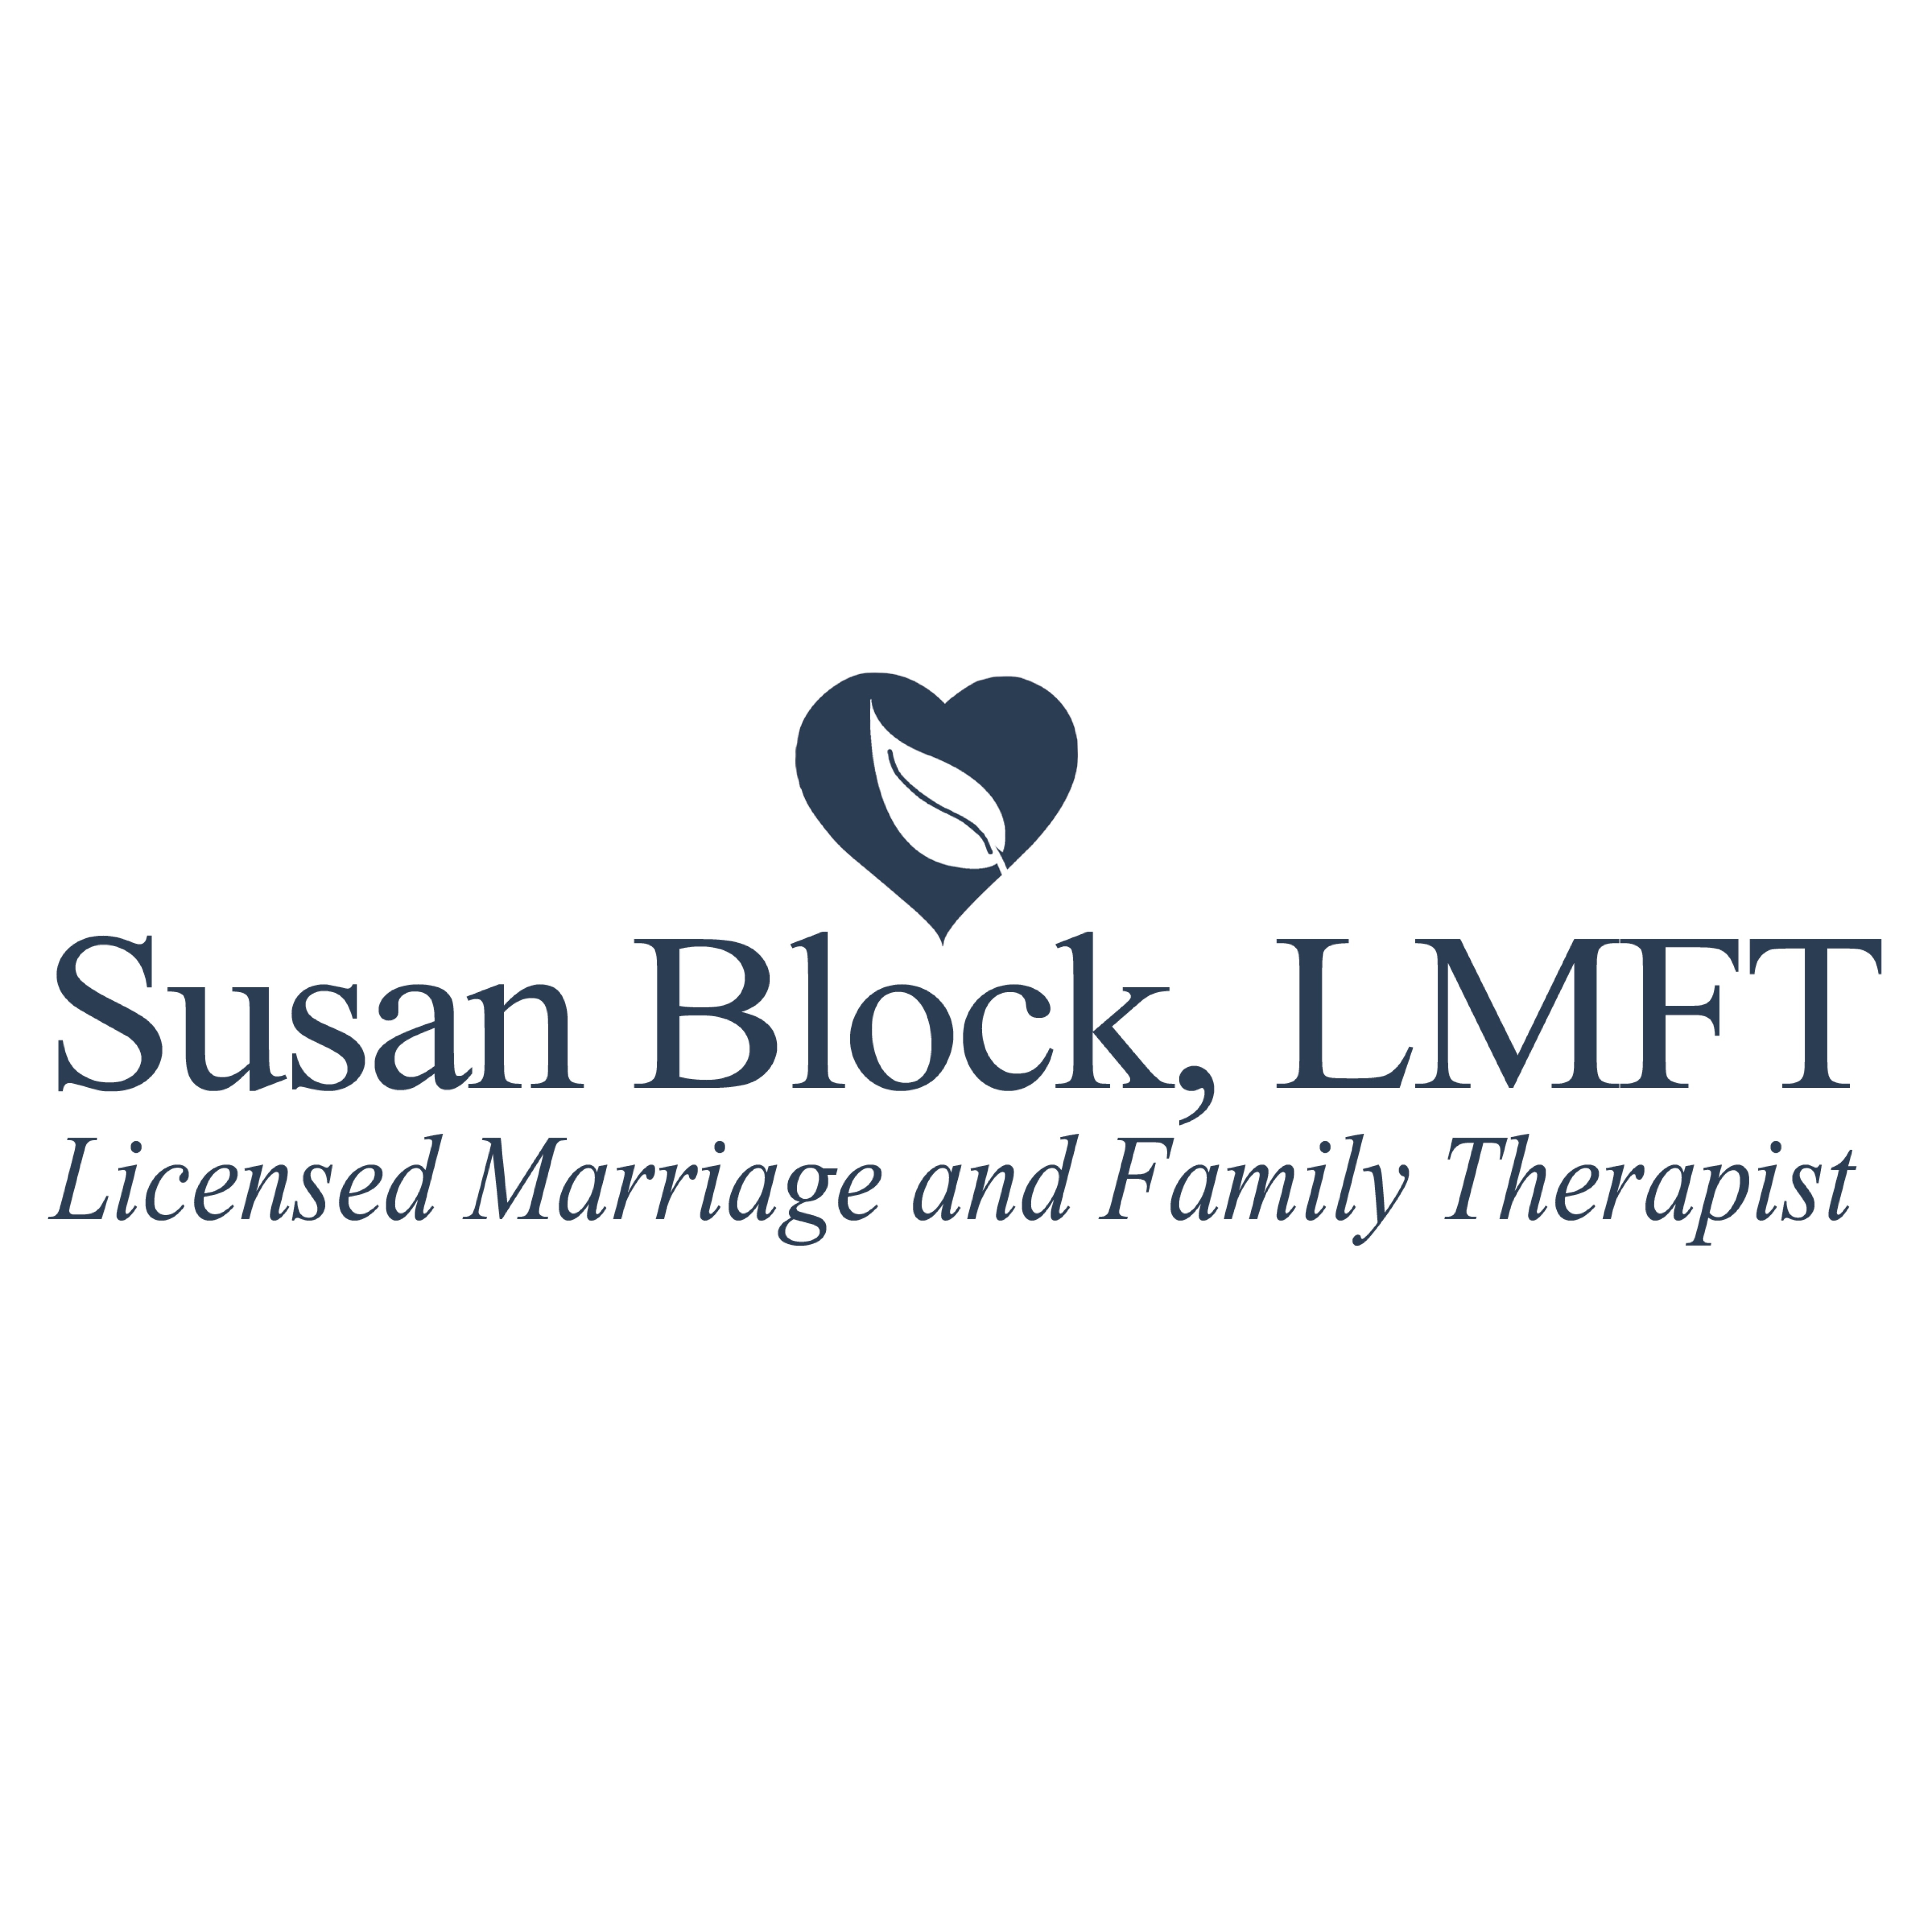 Susan Block LMFT, LLC - Coral Springs, FL - Counseling & Therapy Services